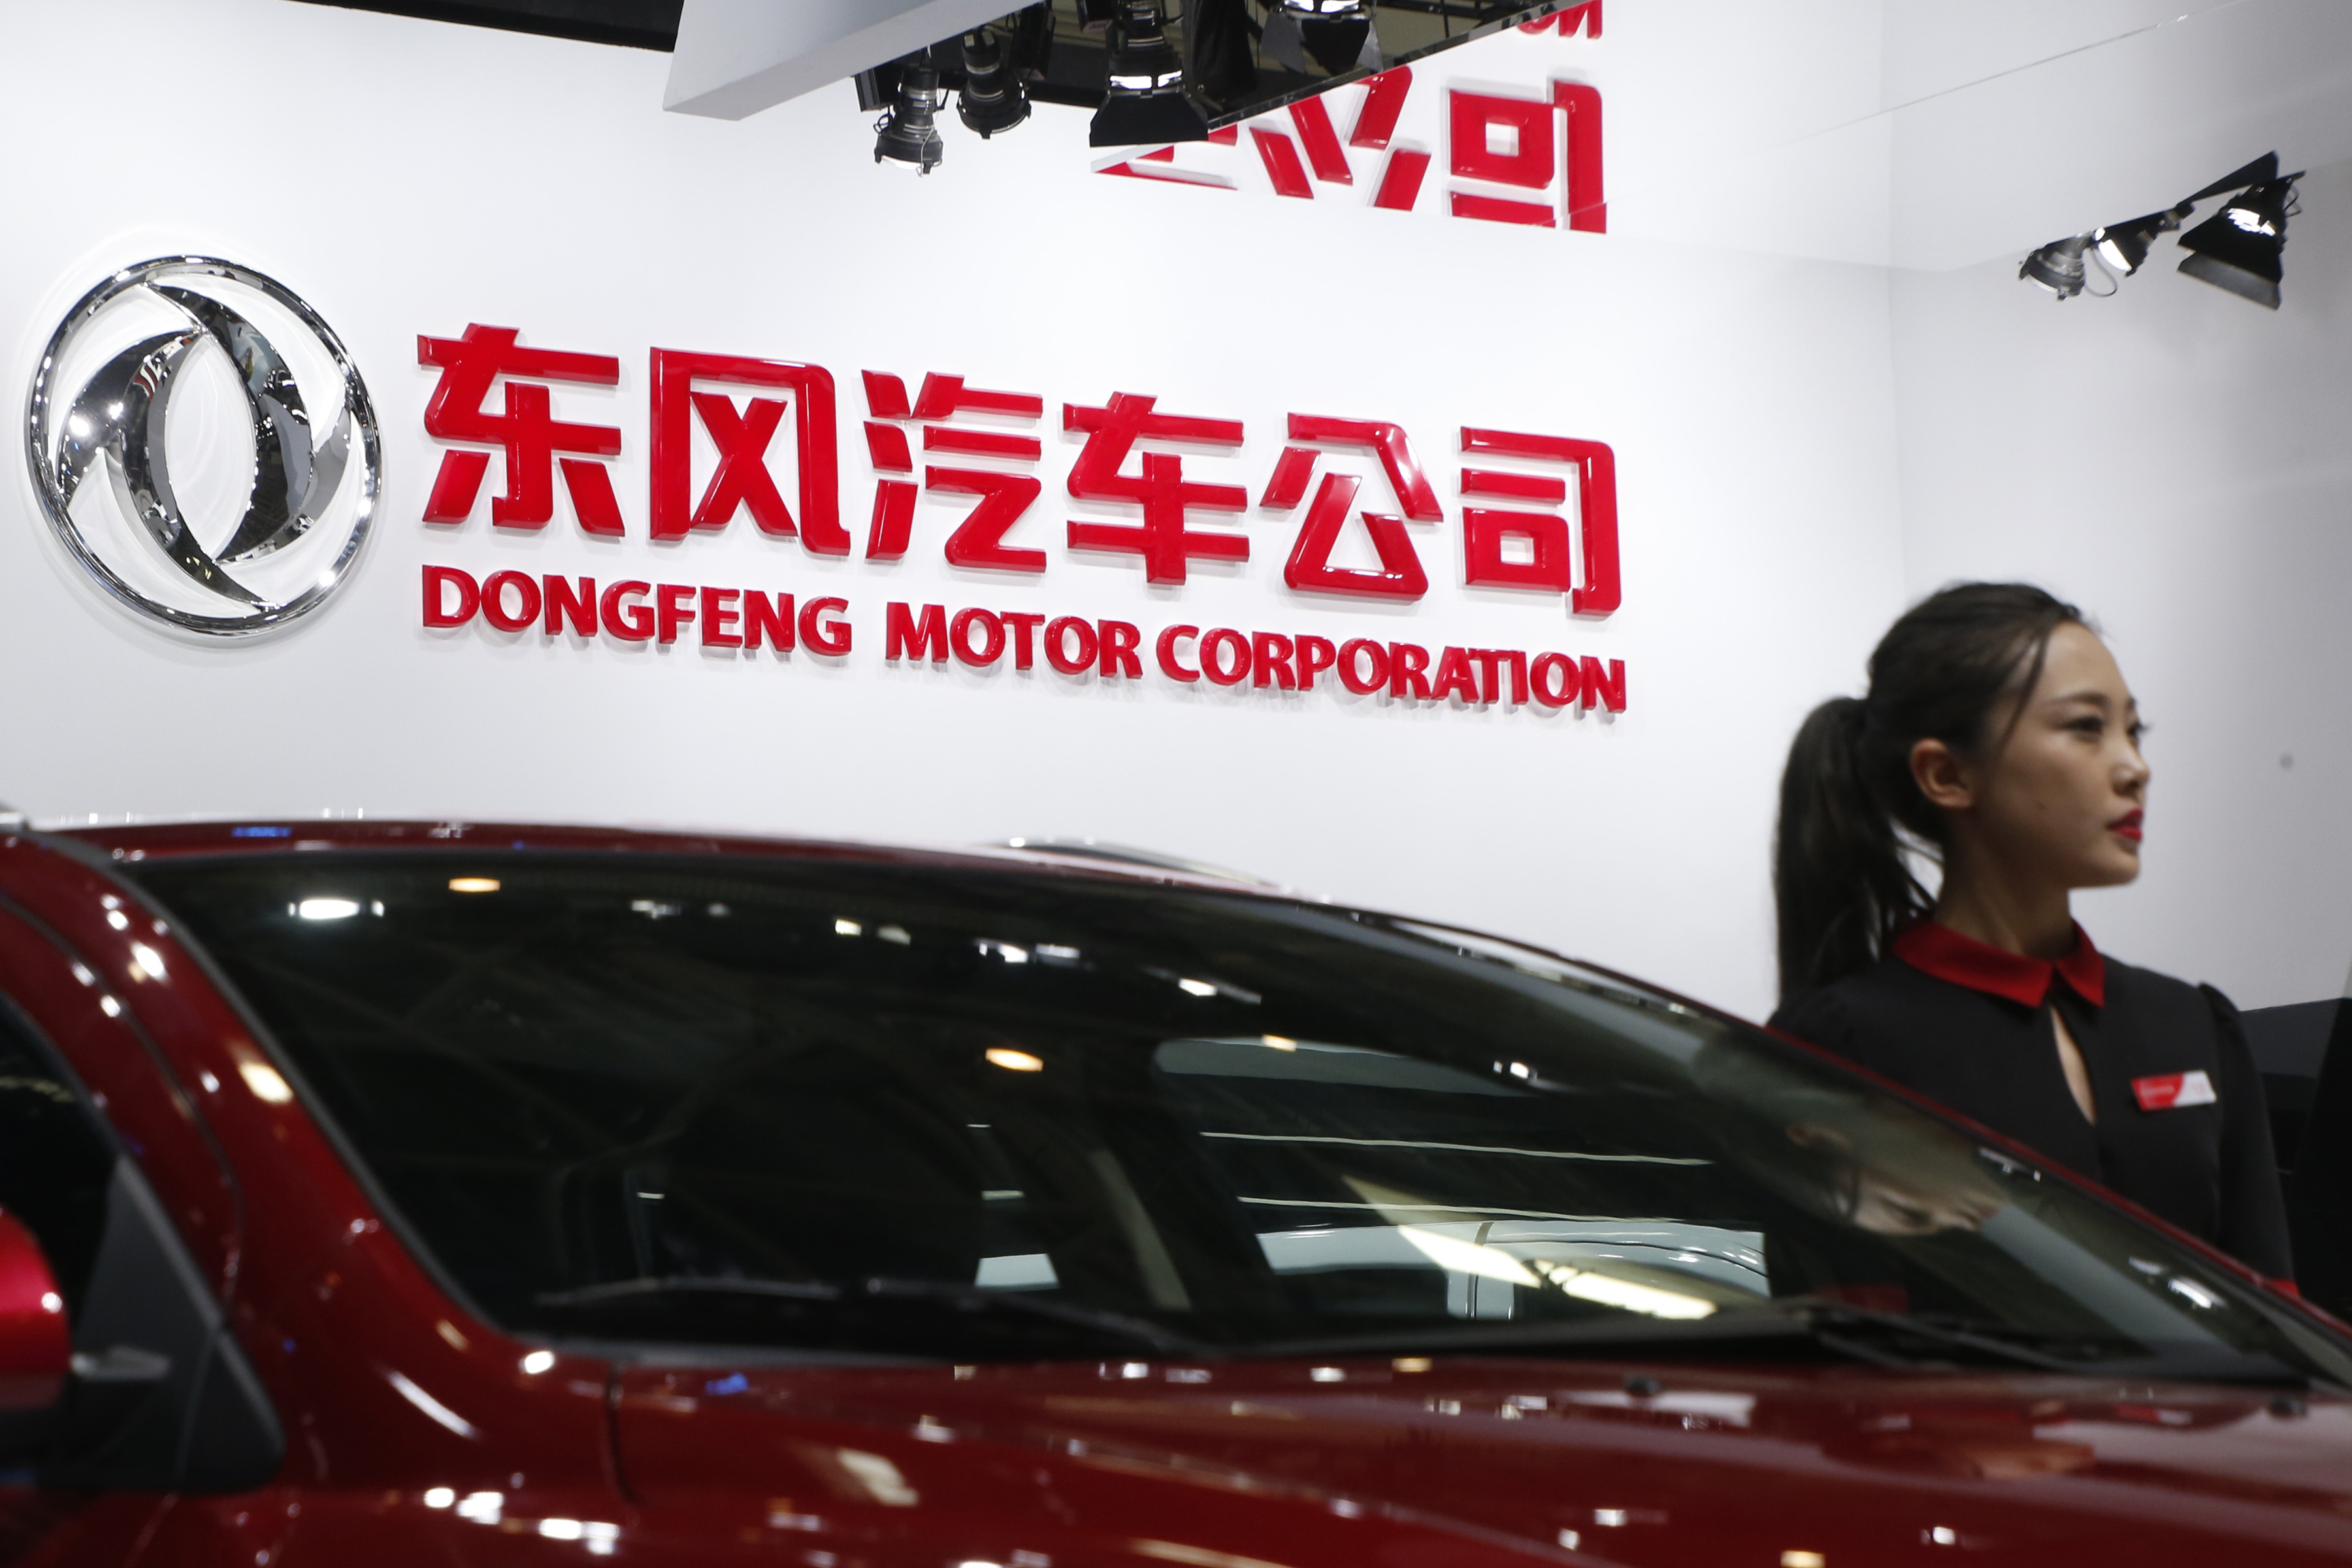 A hostess poses next to Dongfeng Motor Corp A9 sedan at the Auto China 2016 auto show in Beijing, China, April 26, 2016. REUTERS/Kim Kyung-Hoon/Files